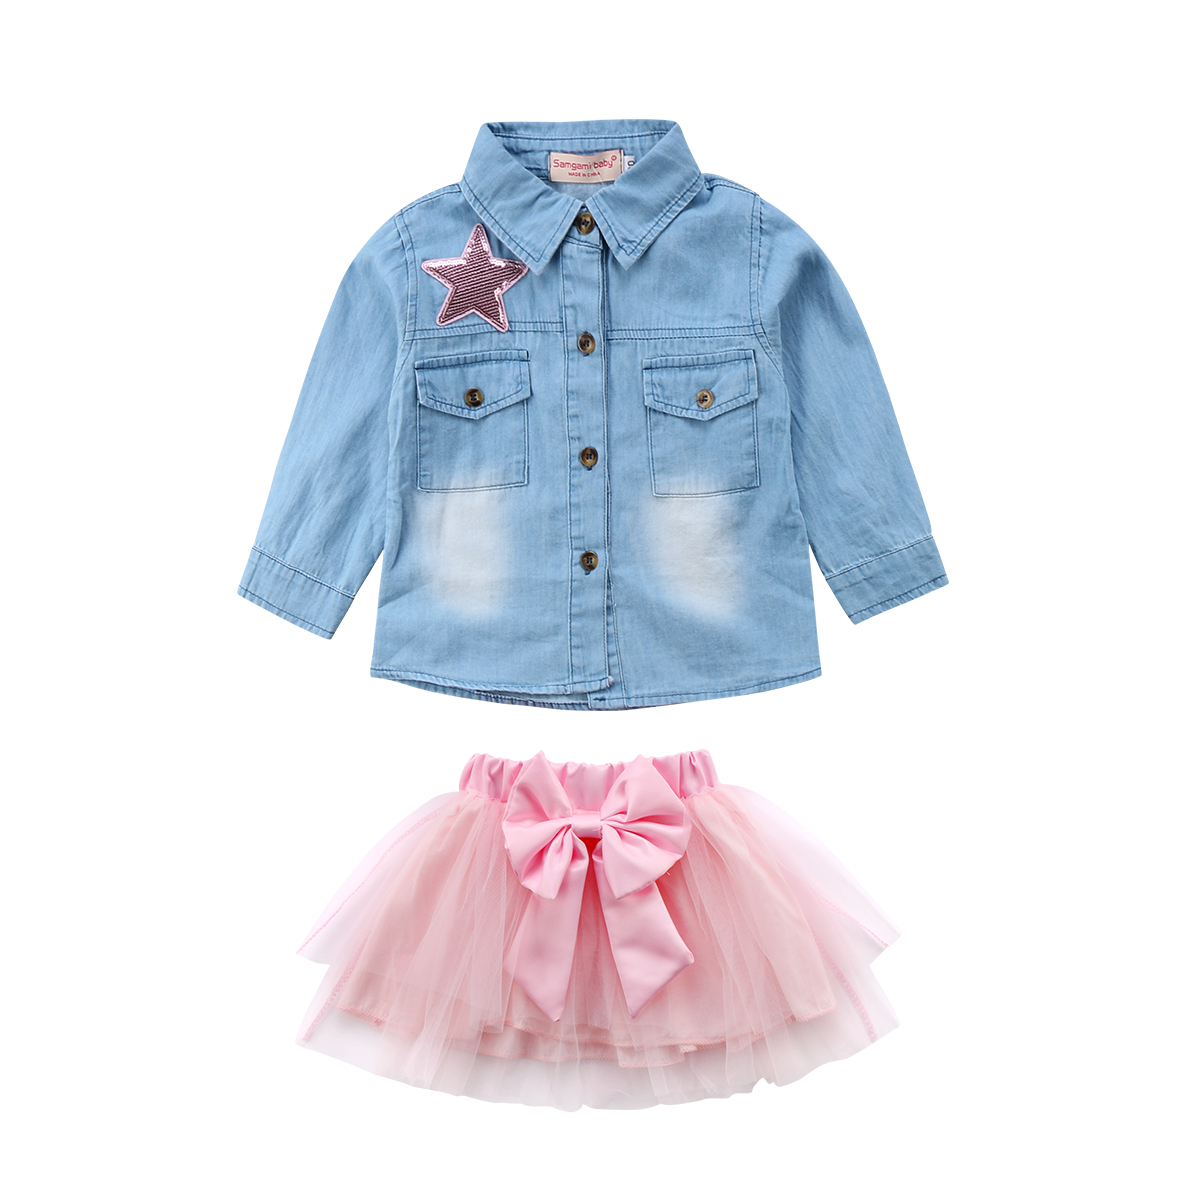 2PCS Toddler Kids Baby Girl Clothing Denim Top Shirt Long Sleeve Tutu Skirt Bow 2pcs Outfits Clothes Set Girls 1-6T princess toddler kids baby girl clothes sets sequins tops vest tutu skirts cute ball headband 3pcs outfits set girls clothing